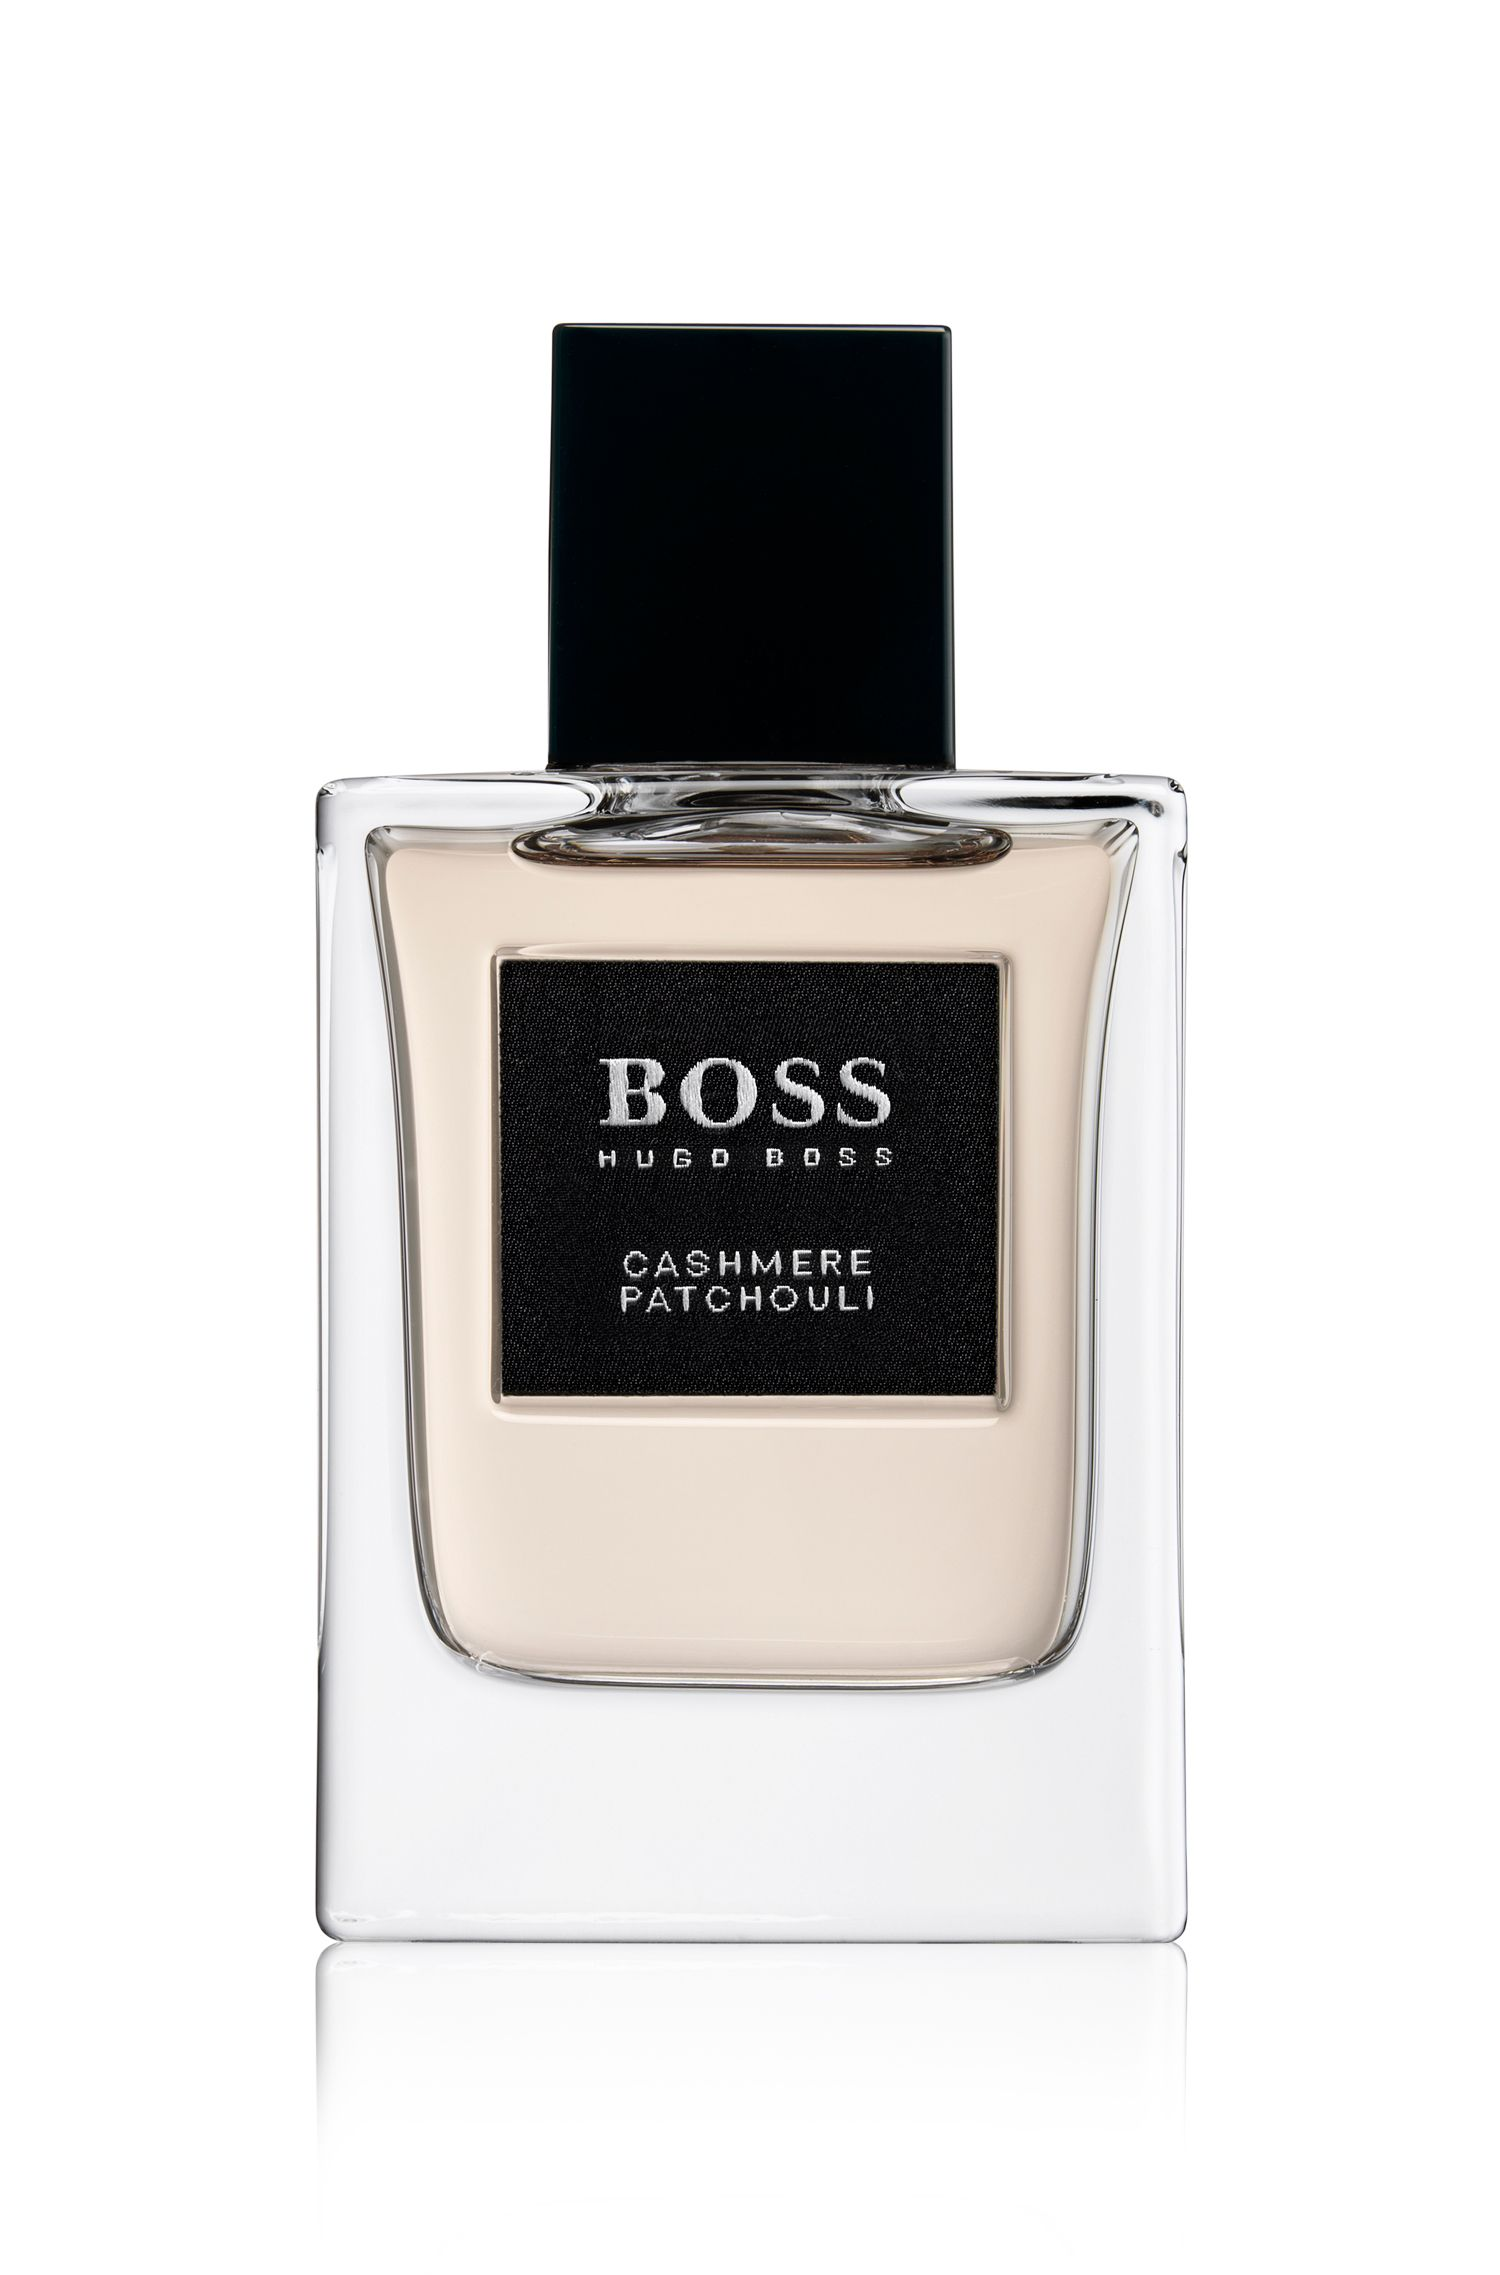 'BOSS The Collection' | 1.6 fl. oz. (50 mL) Cashmere & Patchouli Eau de Toilette